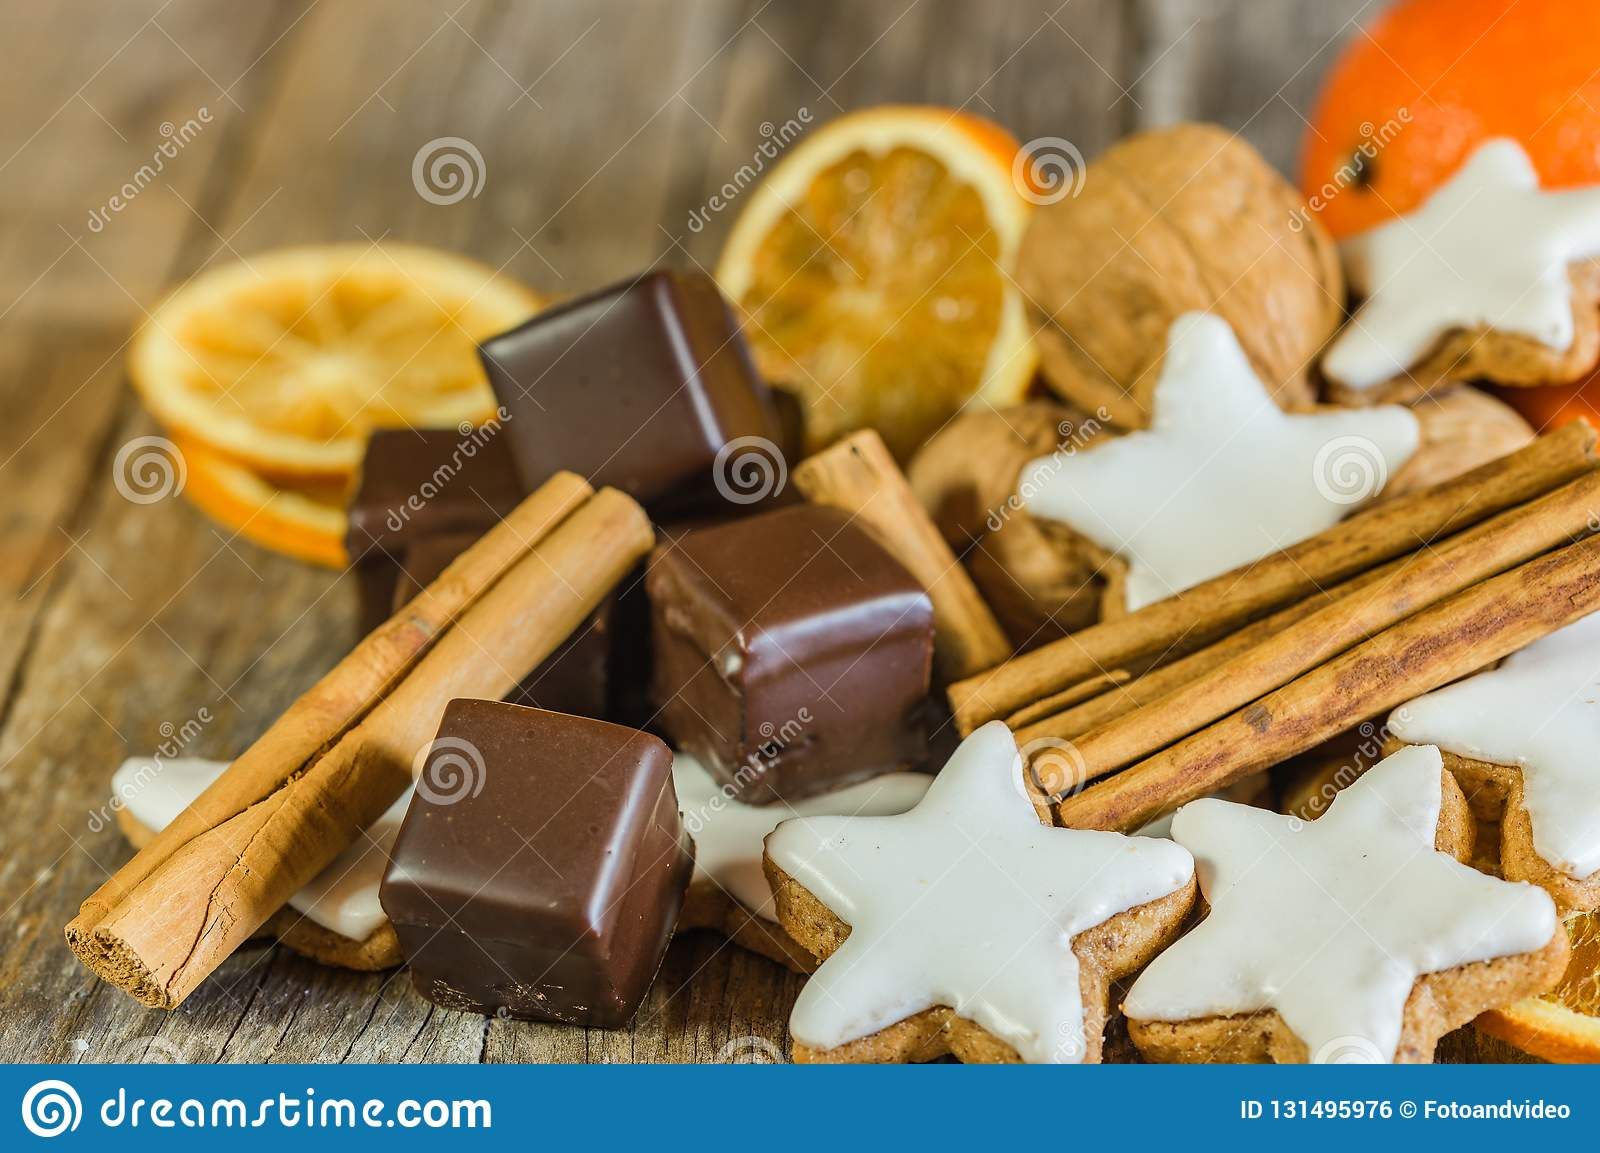 Christmas Food Star Biscuits Chocolate And Spices On Wooden Table